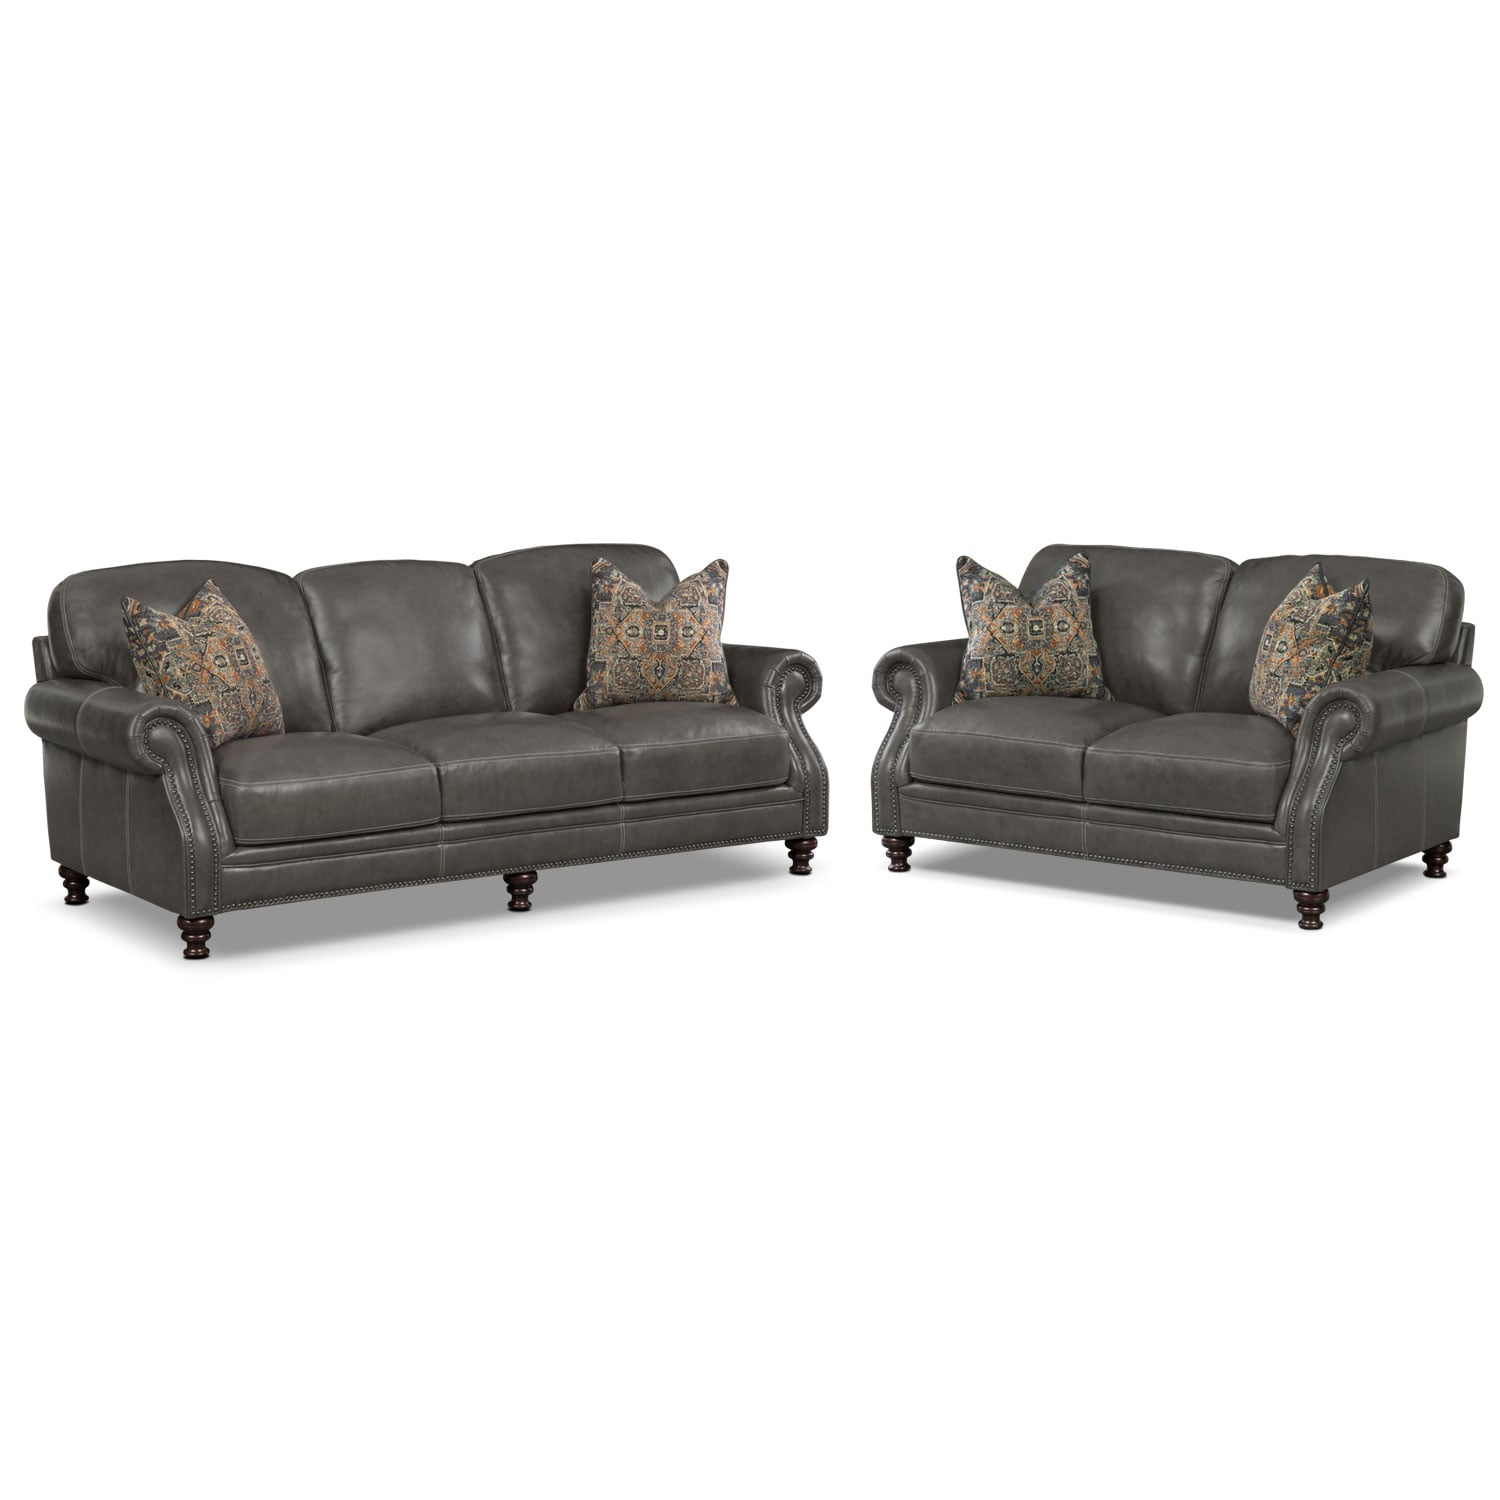 Living Room Furniture - Carrington Charcoal 2 Pc. Living Room